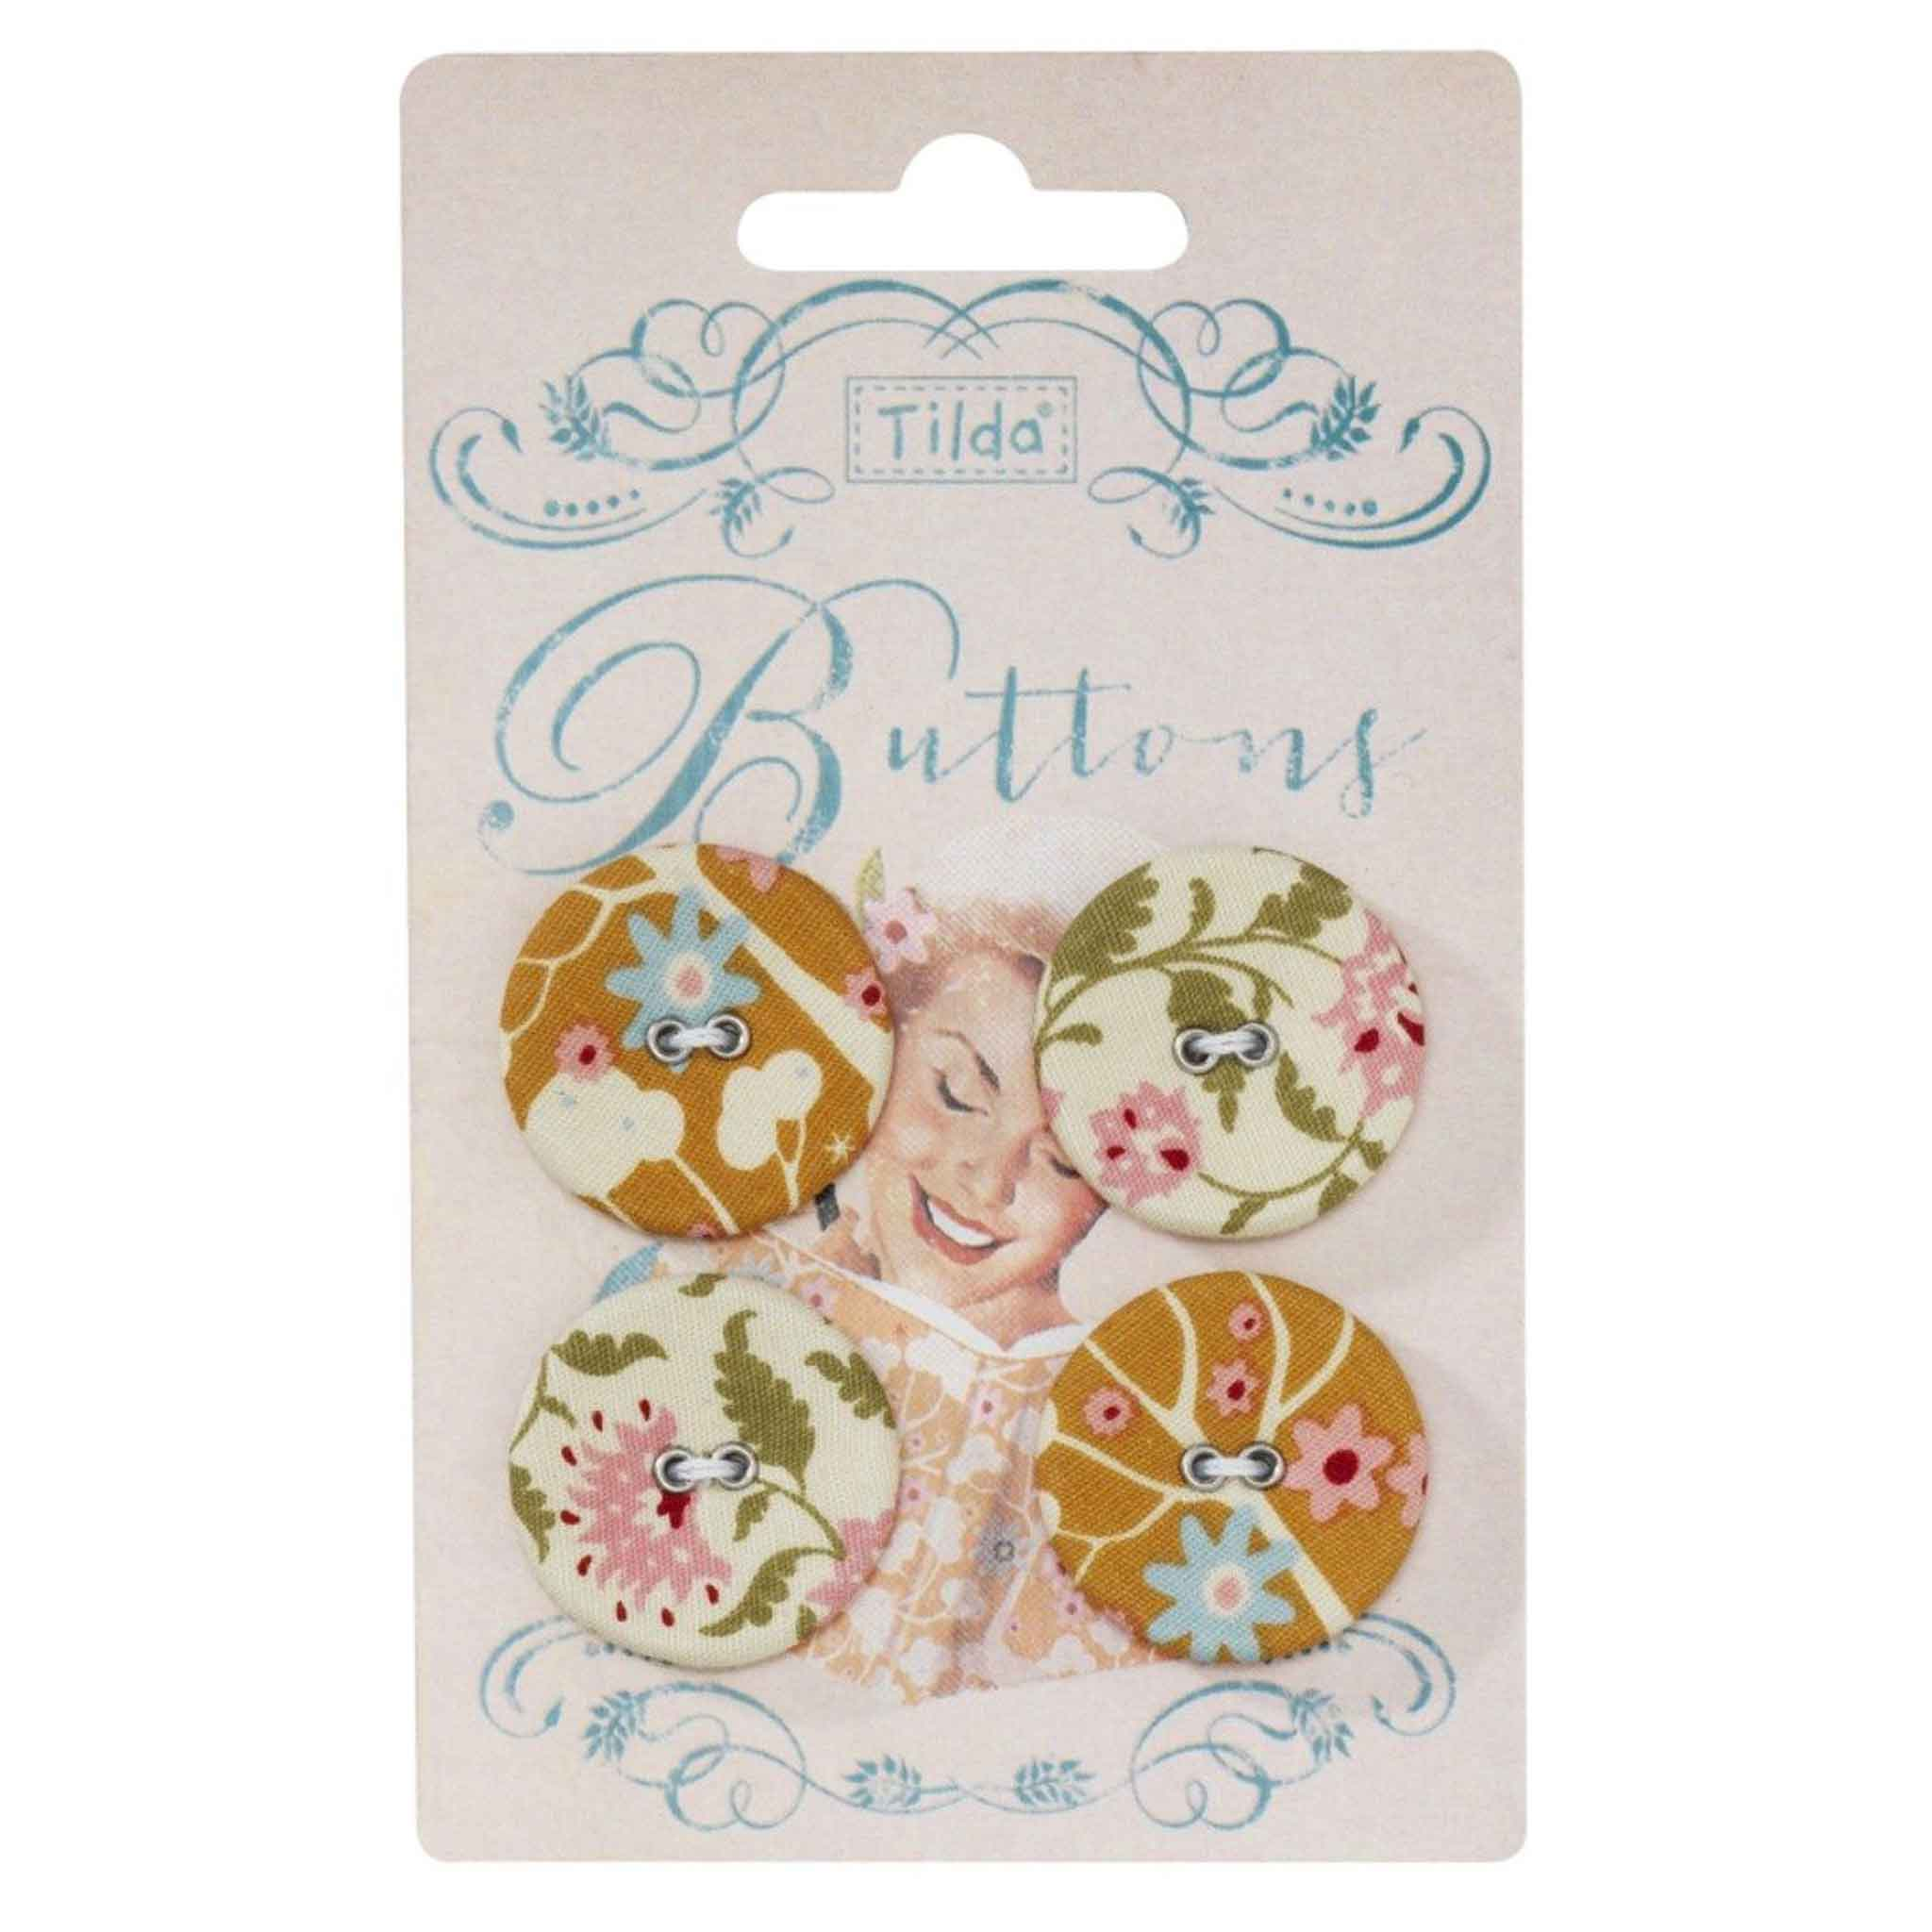 Tilda 25 mm Buttons, Spring Diaries Collection, 481092,  Pack of 4 Tilda Fabric Covered Buttons - Fabric and Ribbon